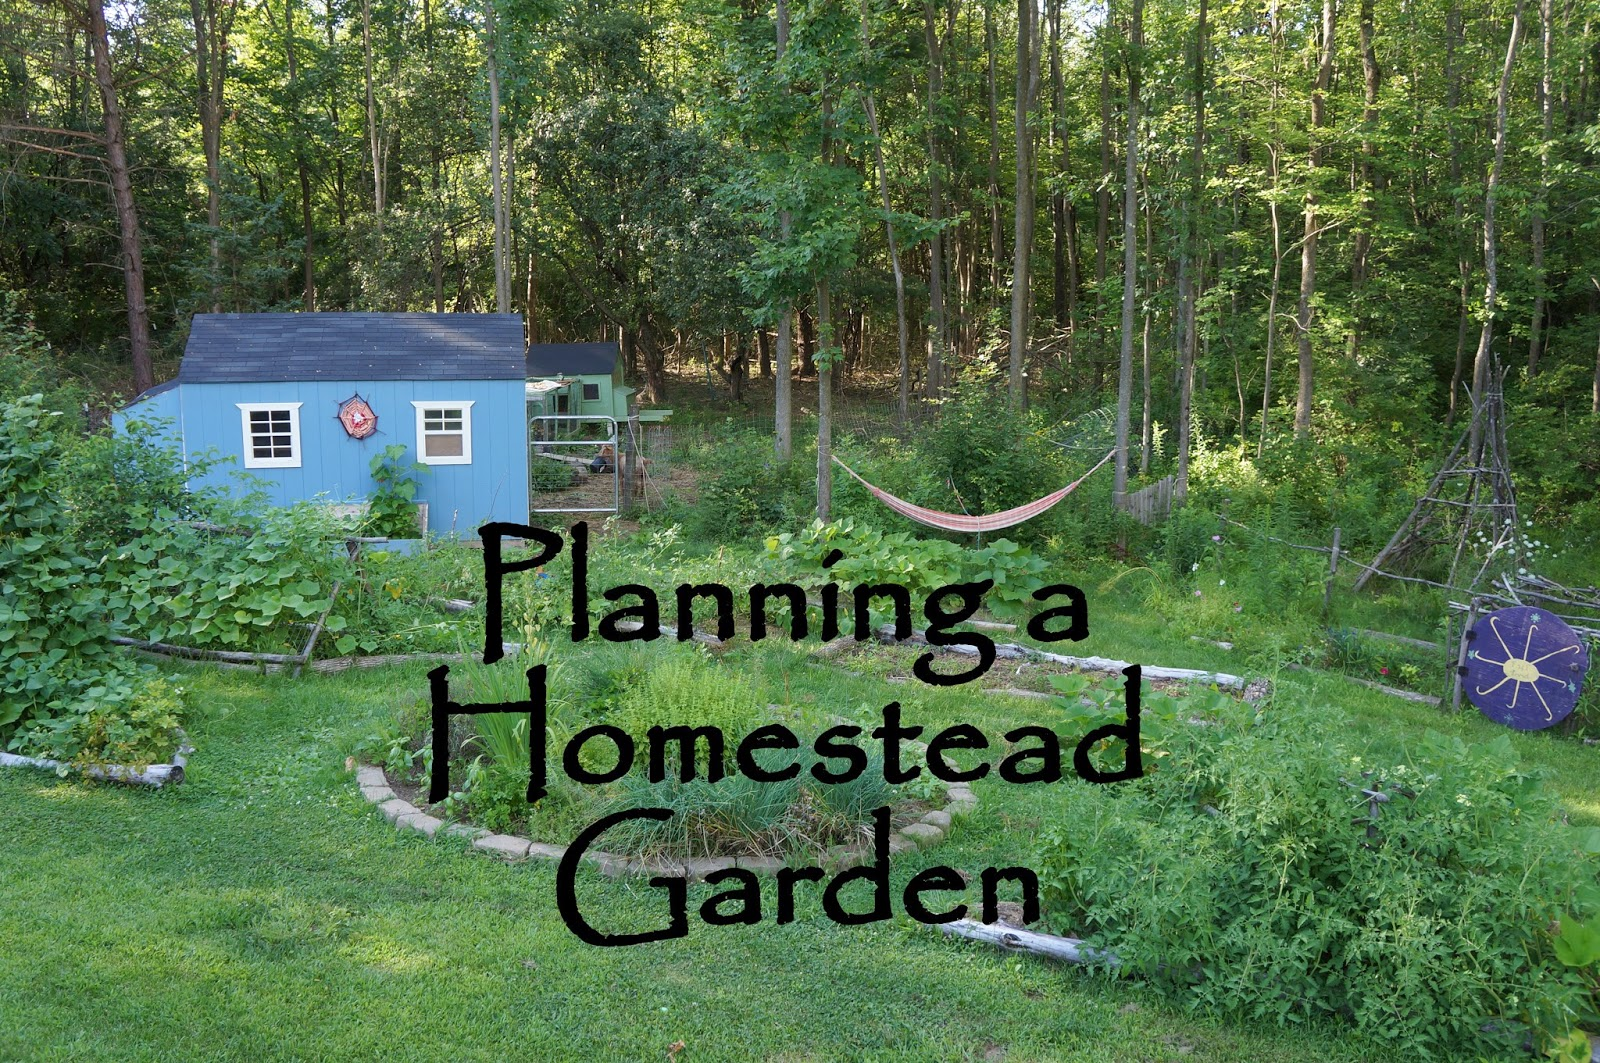 √ The Backyard Farming Connection: Planning Your Homestead Homestead Farm Layout Design on homestead barn layout, 5 acre homestead layout, 1 4 acre homestead layout, homestead water filtration, backyard homestead layout, best homestead layout, homestead garden layout, small homestead layout, mini farming garden layout, homestead farms and gardens, homestead golf course layout,